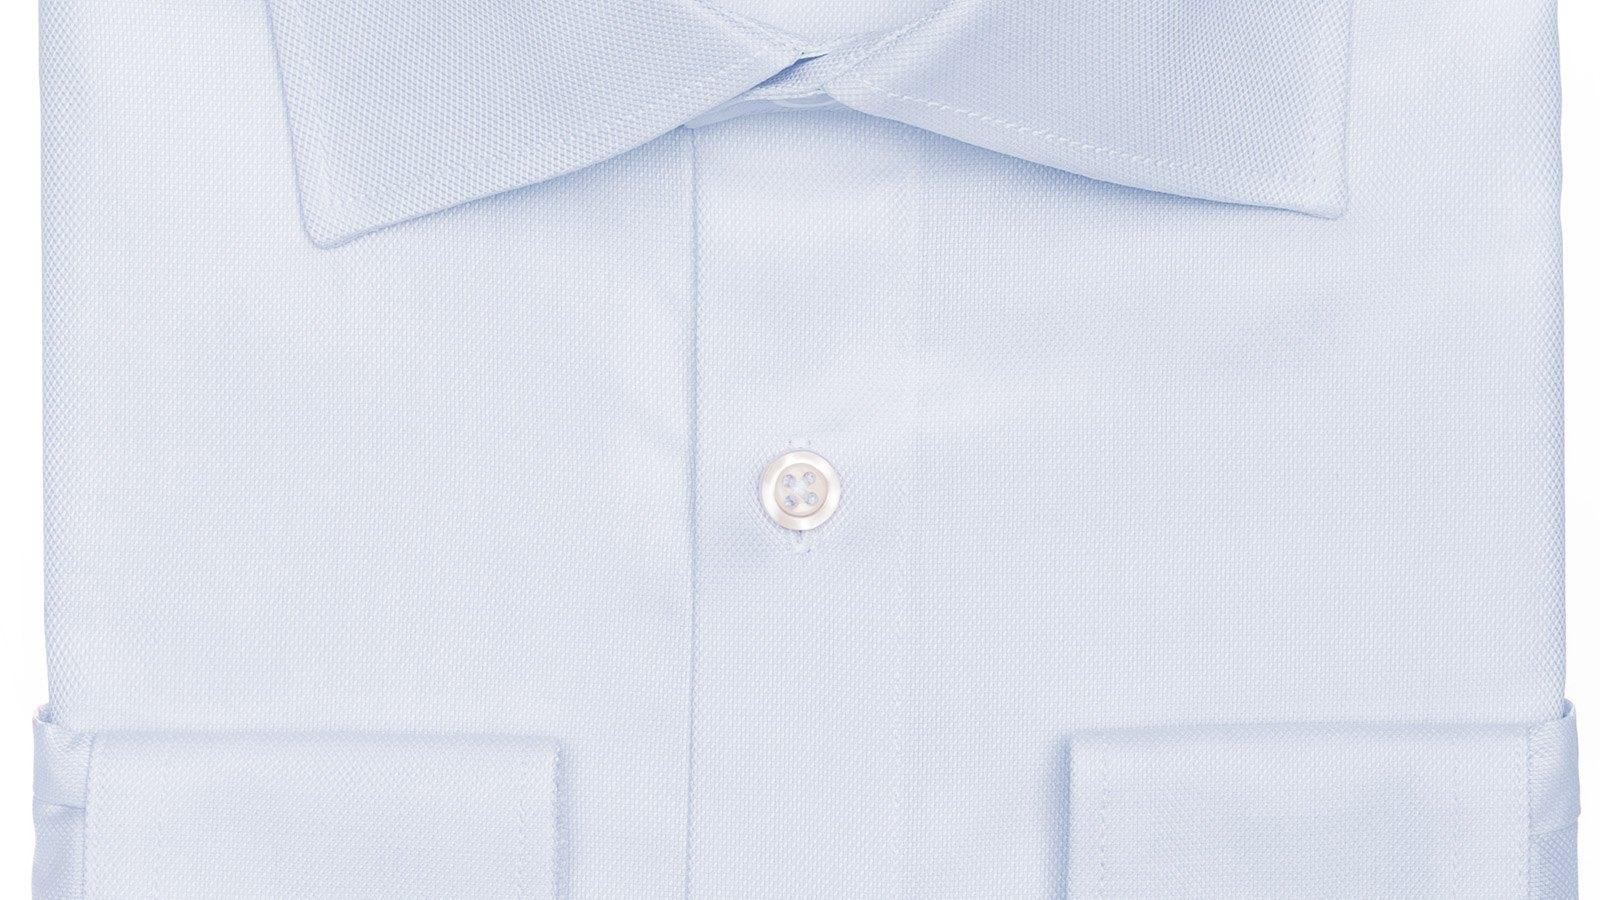 Pastel Blue Cotton Royal Oxford Shirt - slider image